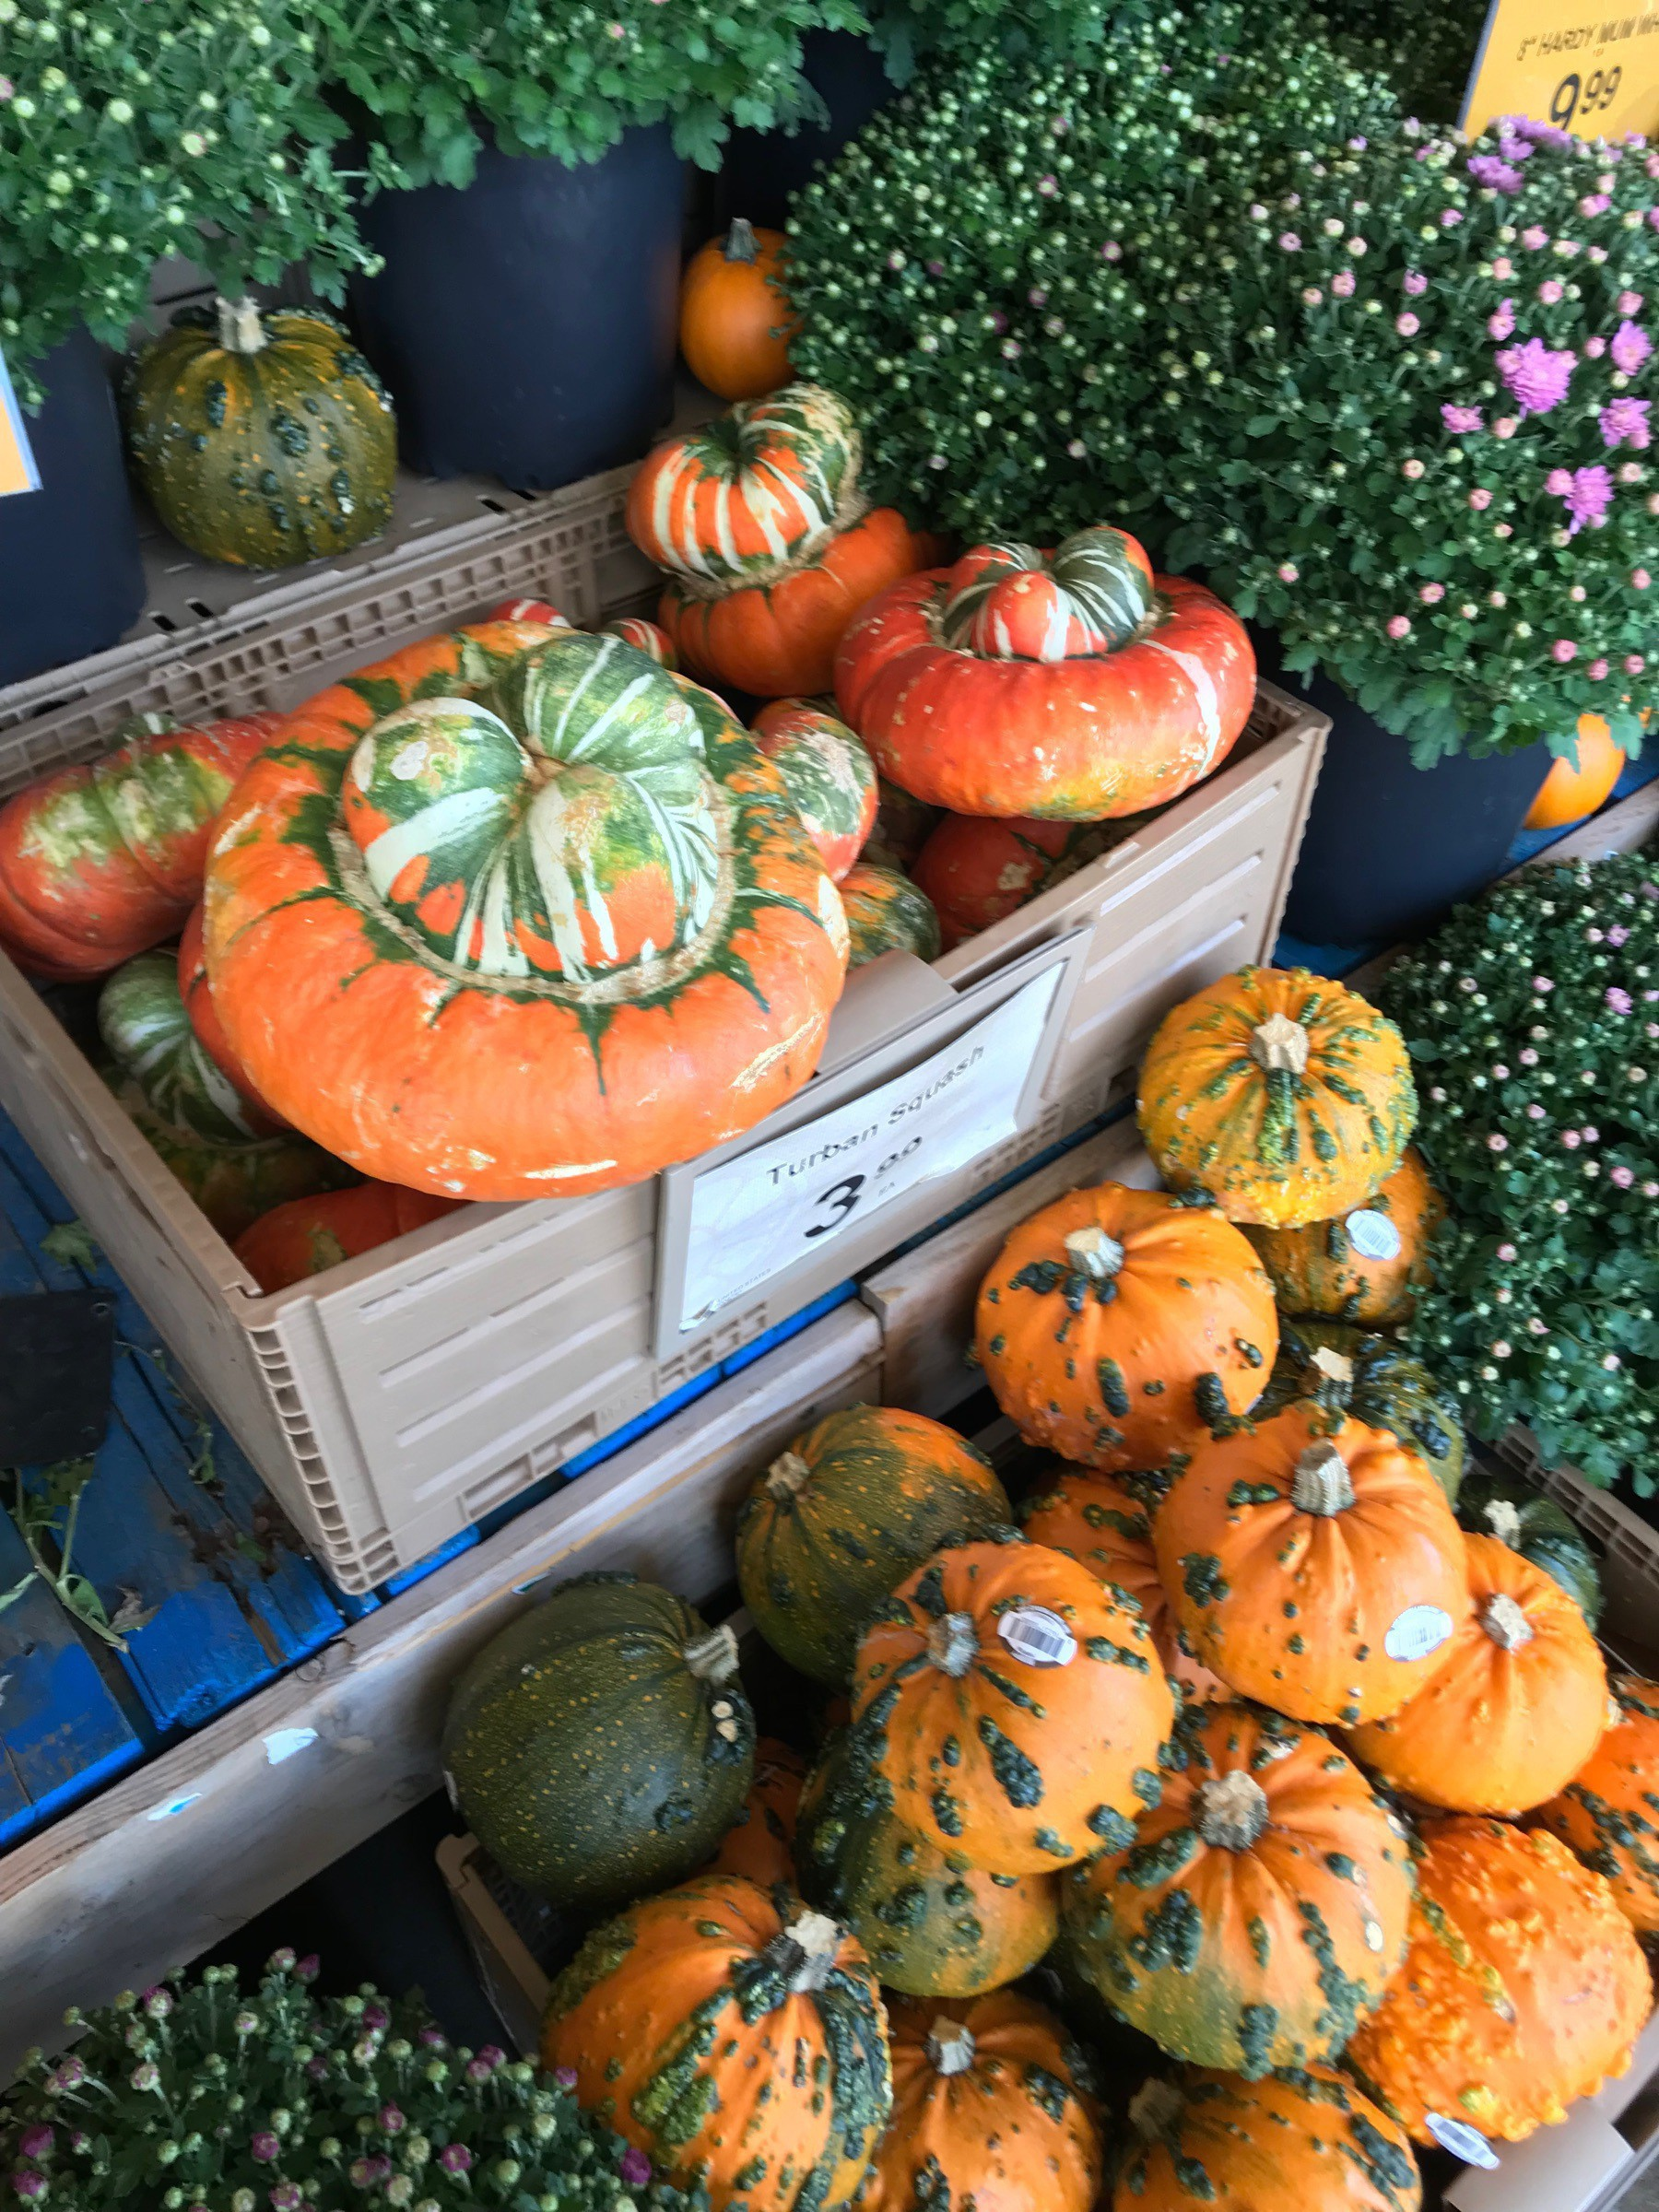 pumpkins and gourds in an exterior display at the market